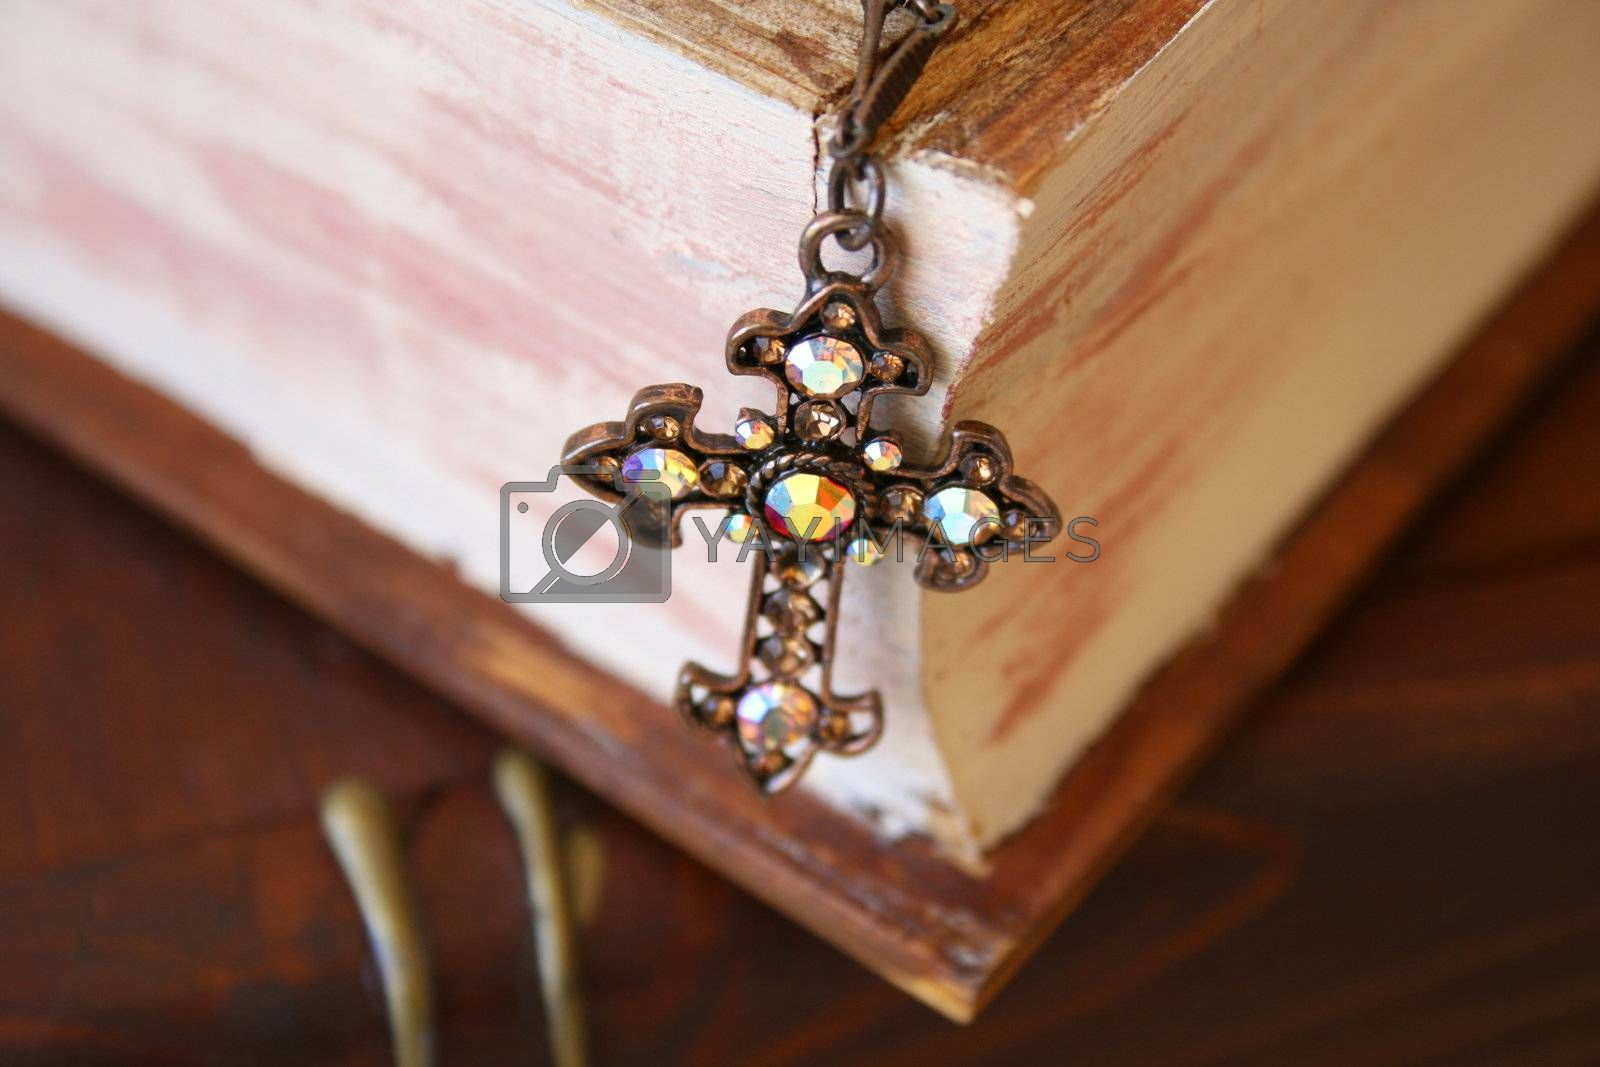 Close up of cross in the form of Jewellery on a wooden Jewellery box